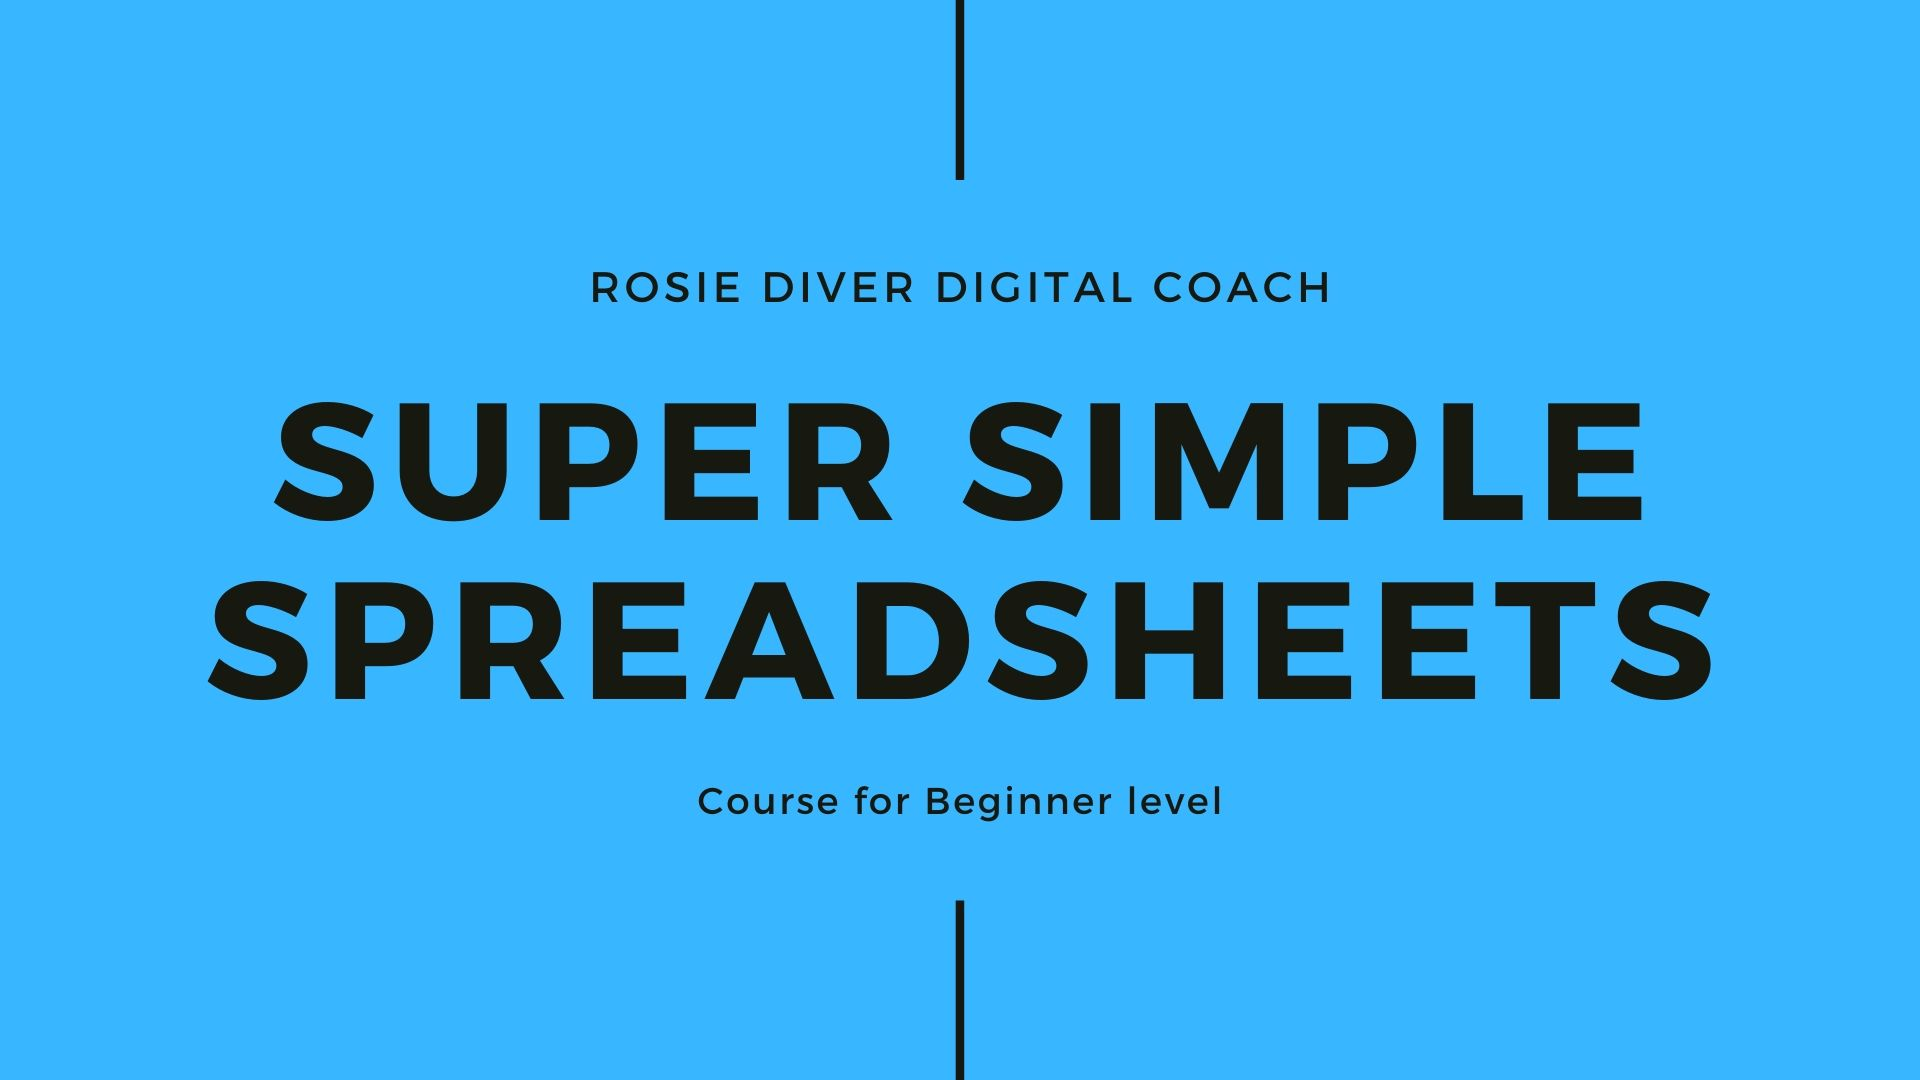 Super simple Spreadsheets for The Digital Coach